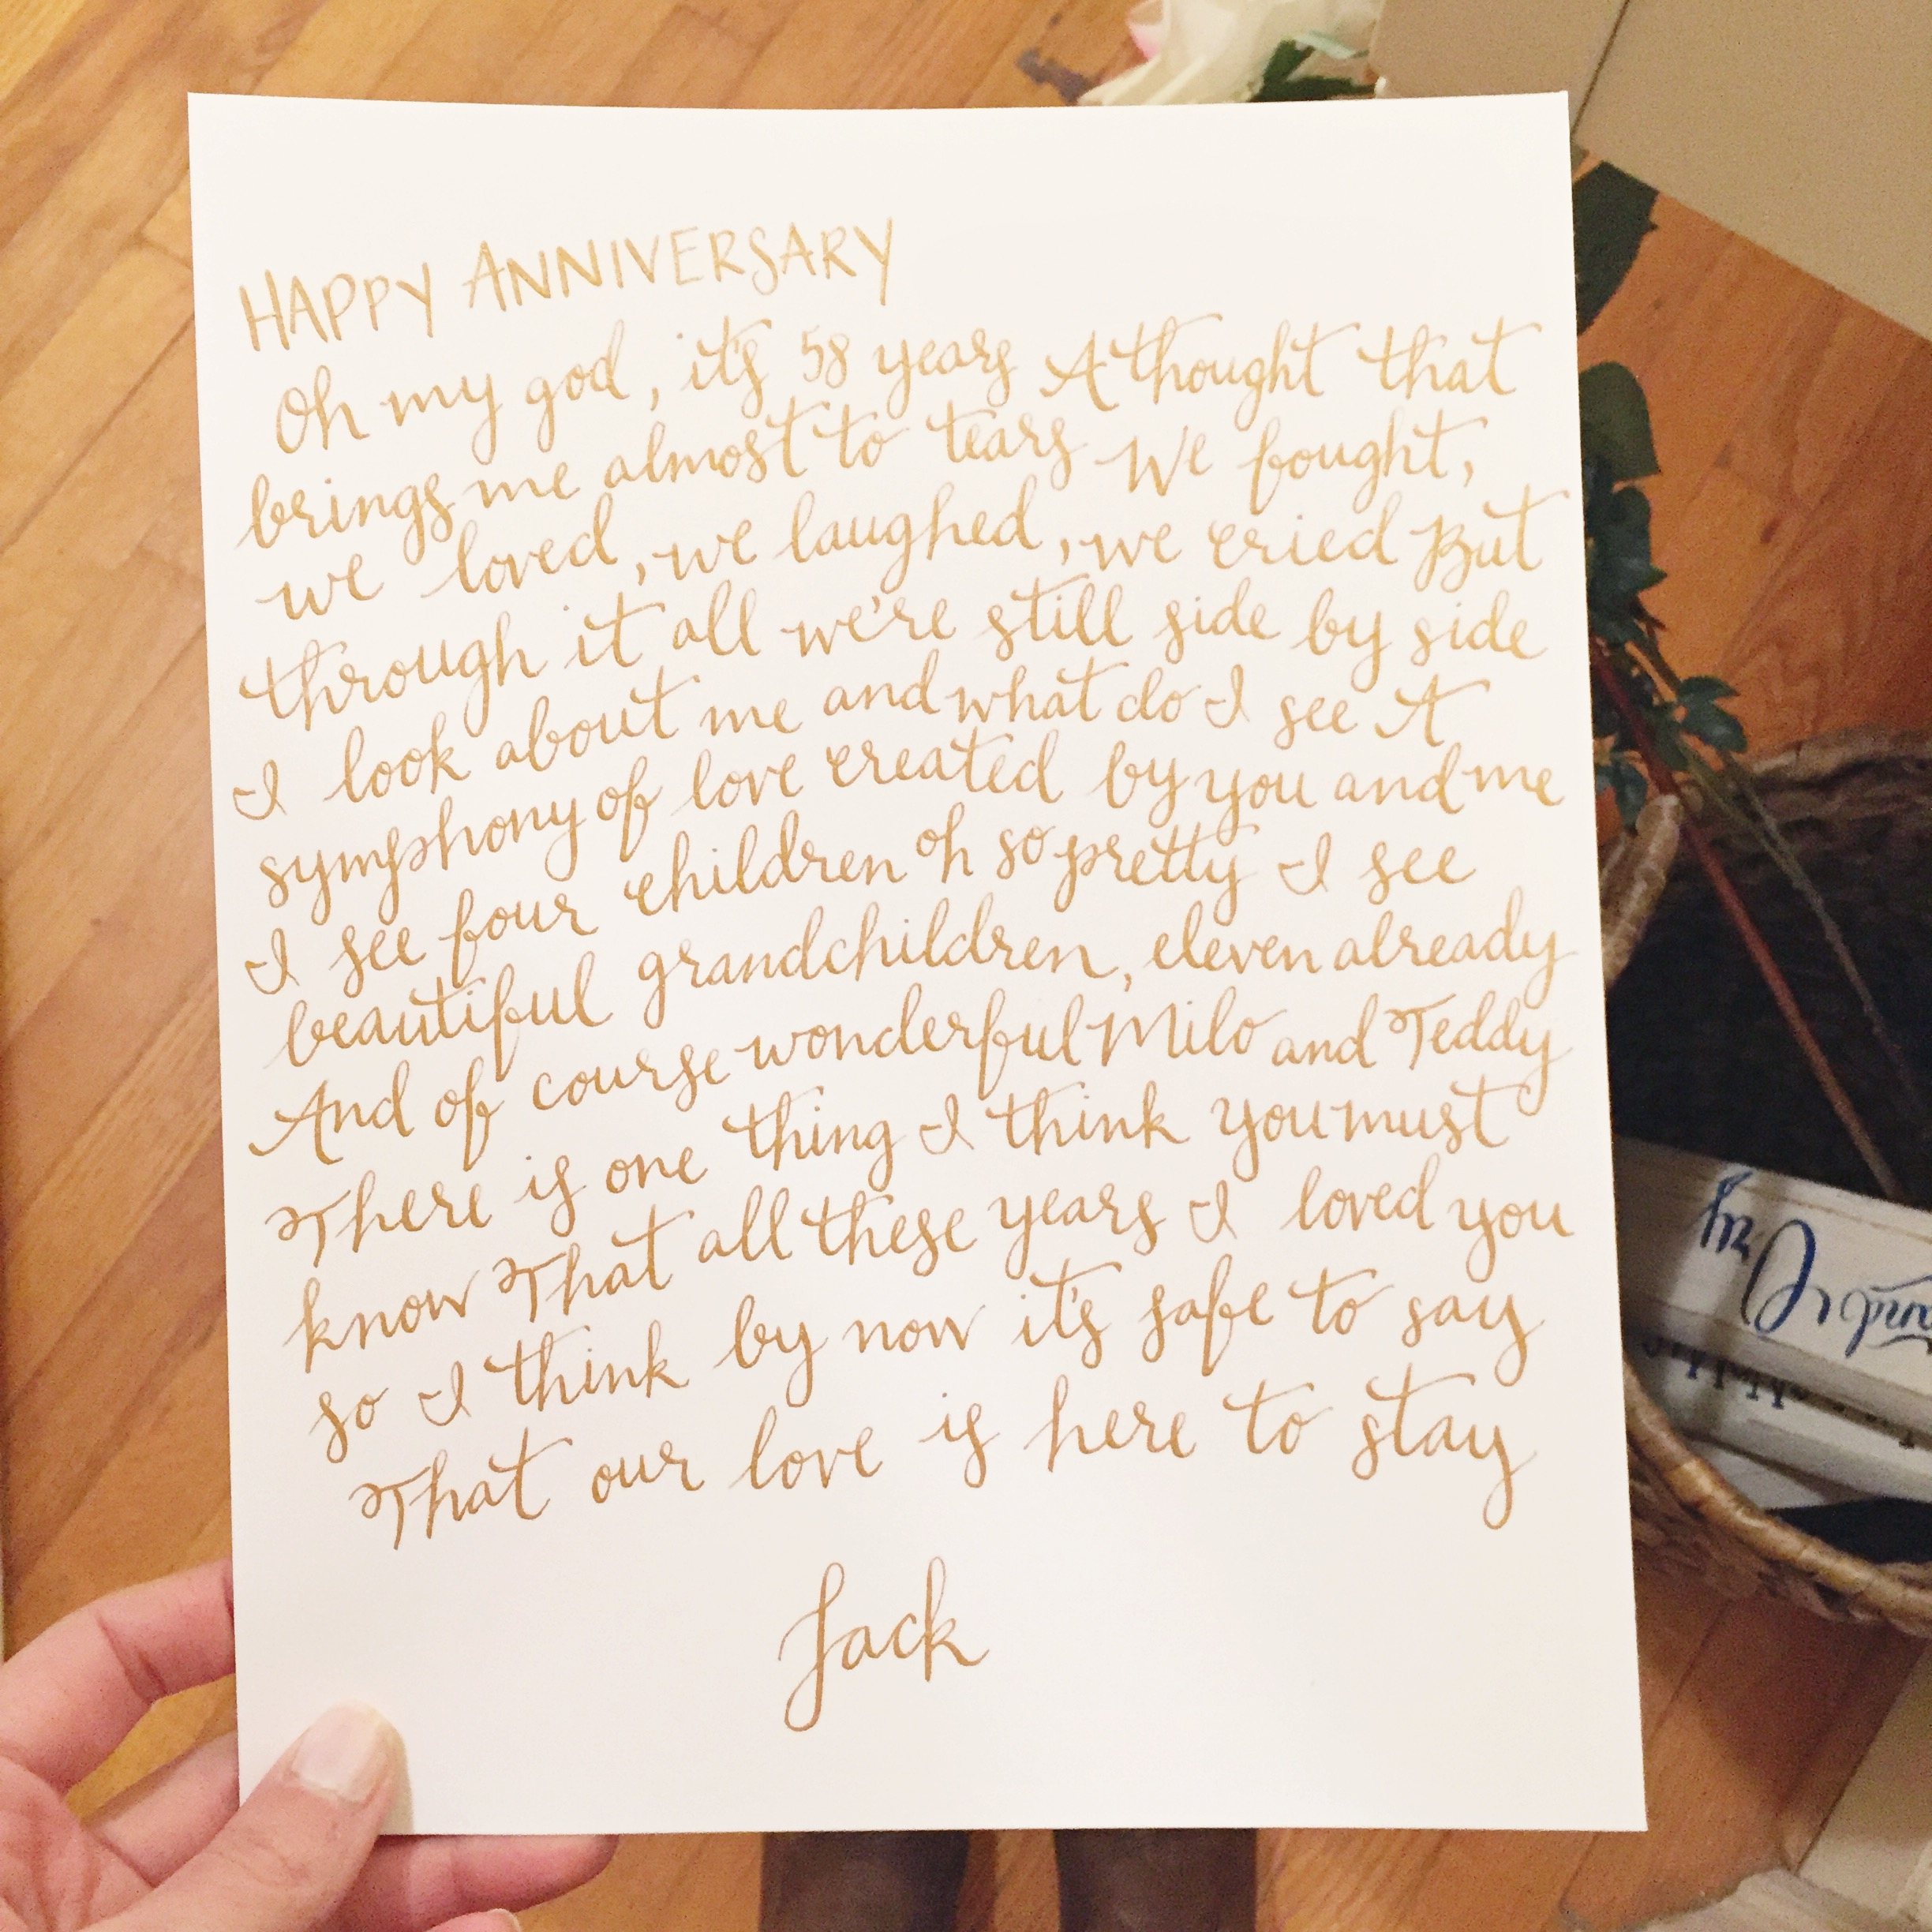 Jenna's grandfather wrote her grandmother this poem for their 58th wedding anniversary.